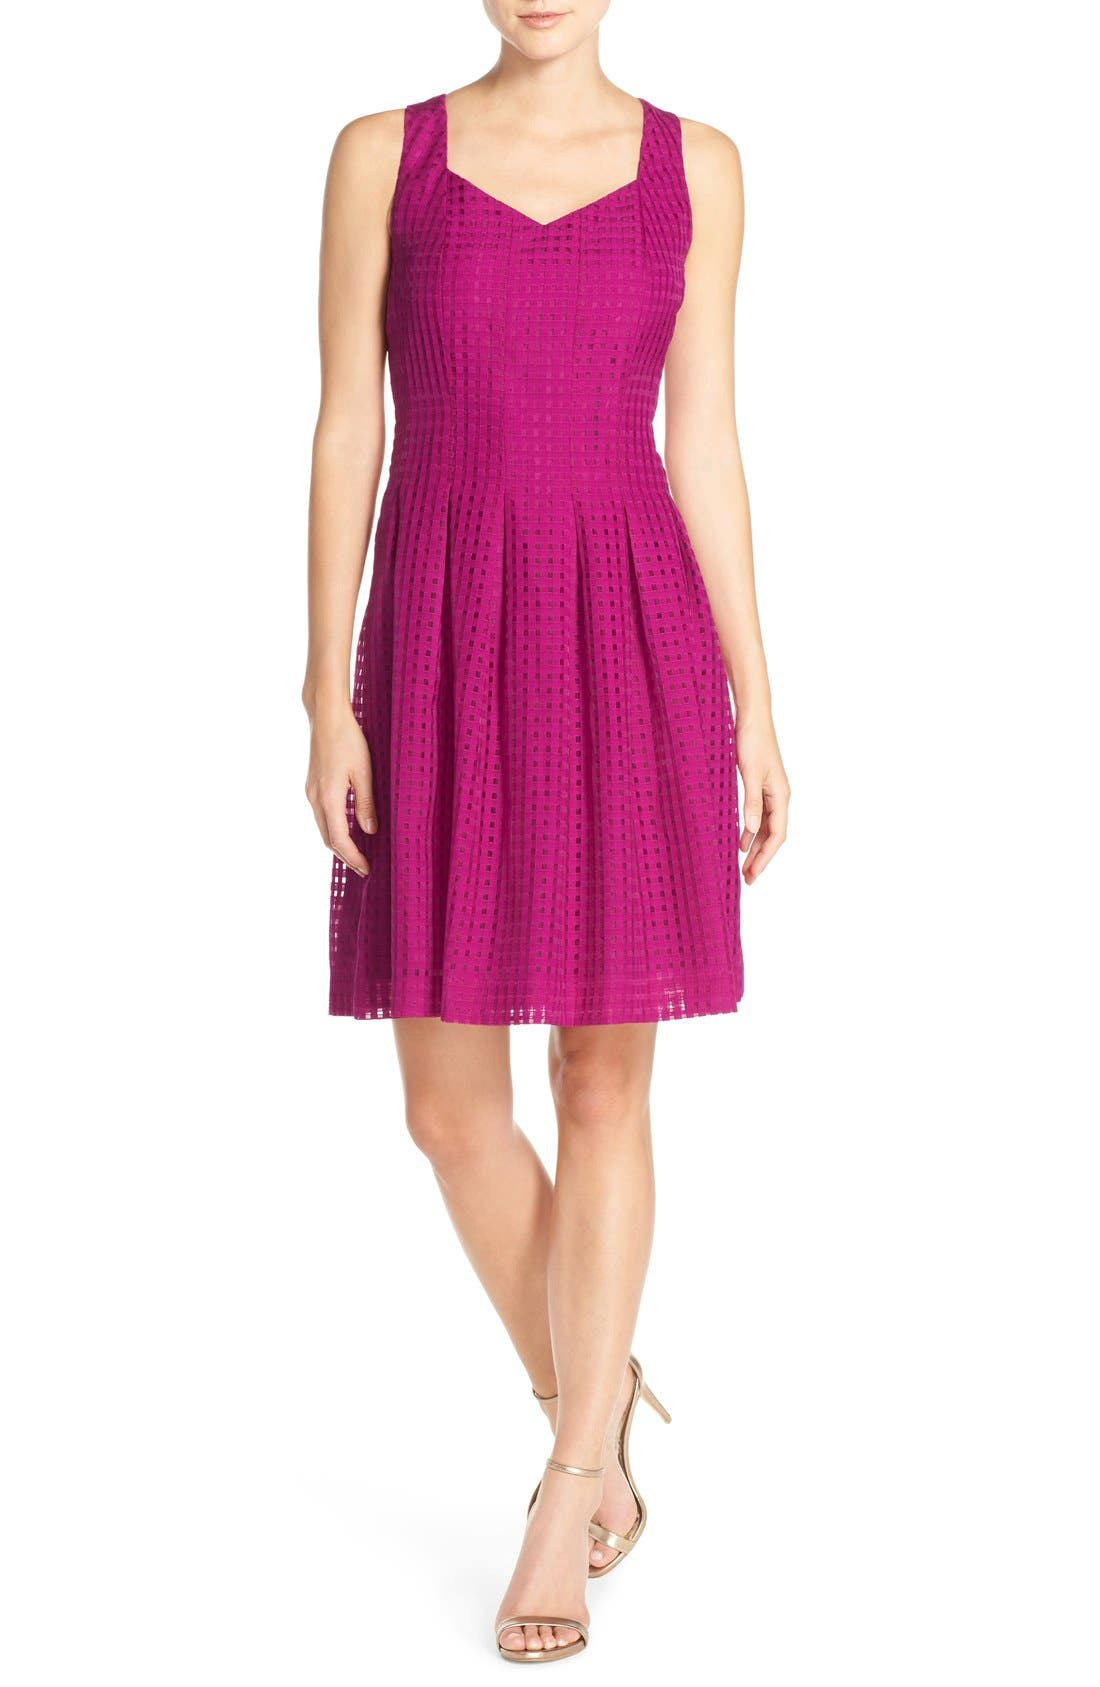 Alternate Image 1 Selected - Ivanka Trump Sleeveless Fit & Flare Dress